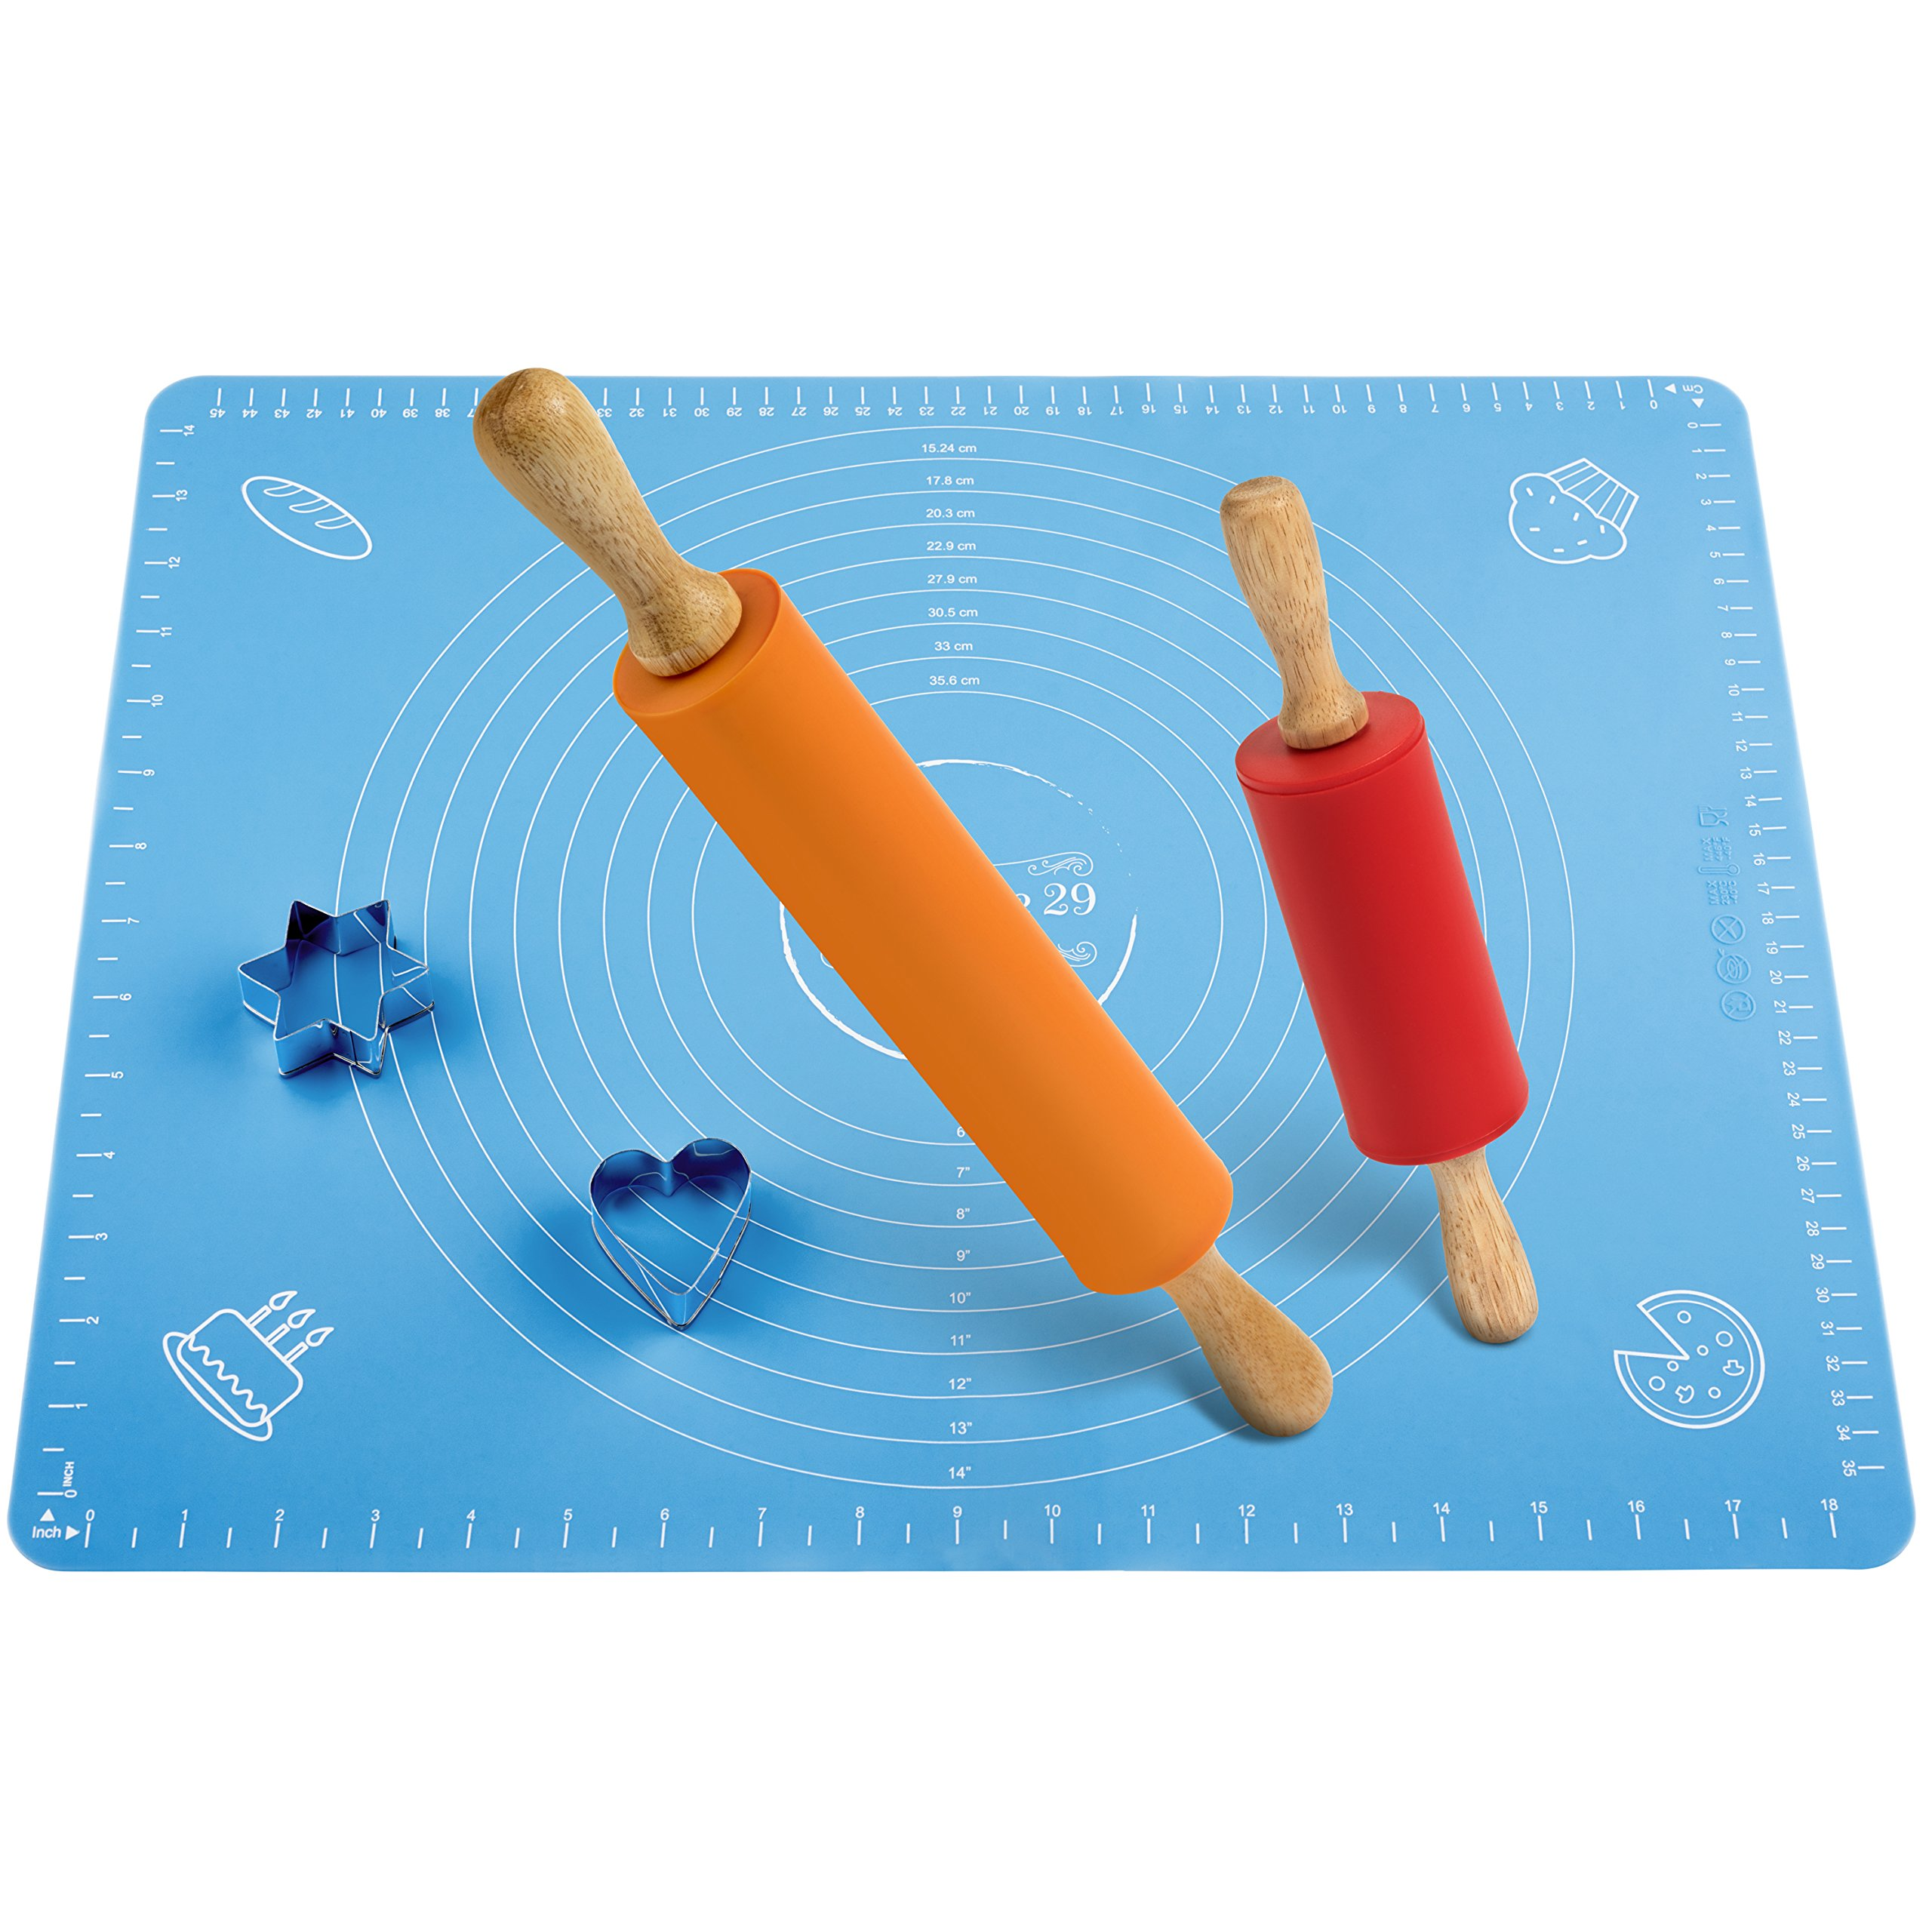 Non-Stick Rolling Pin and Pastry Mat Set: Combo Kit of Large and Small Silicone Dough Rollers, Reusable Kneading Mat with Measurements, and 2 Stainless Steel Cookie Cutters for Baking Patisserie 29